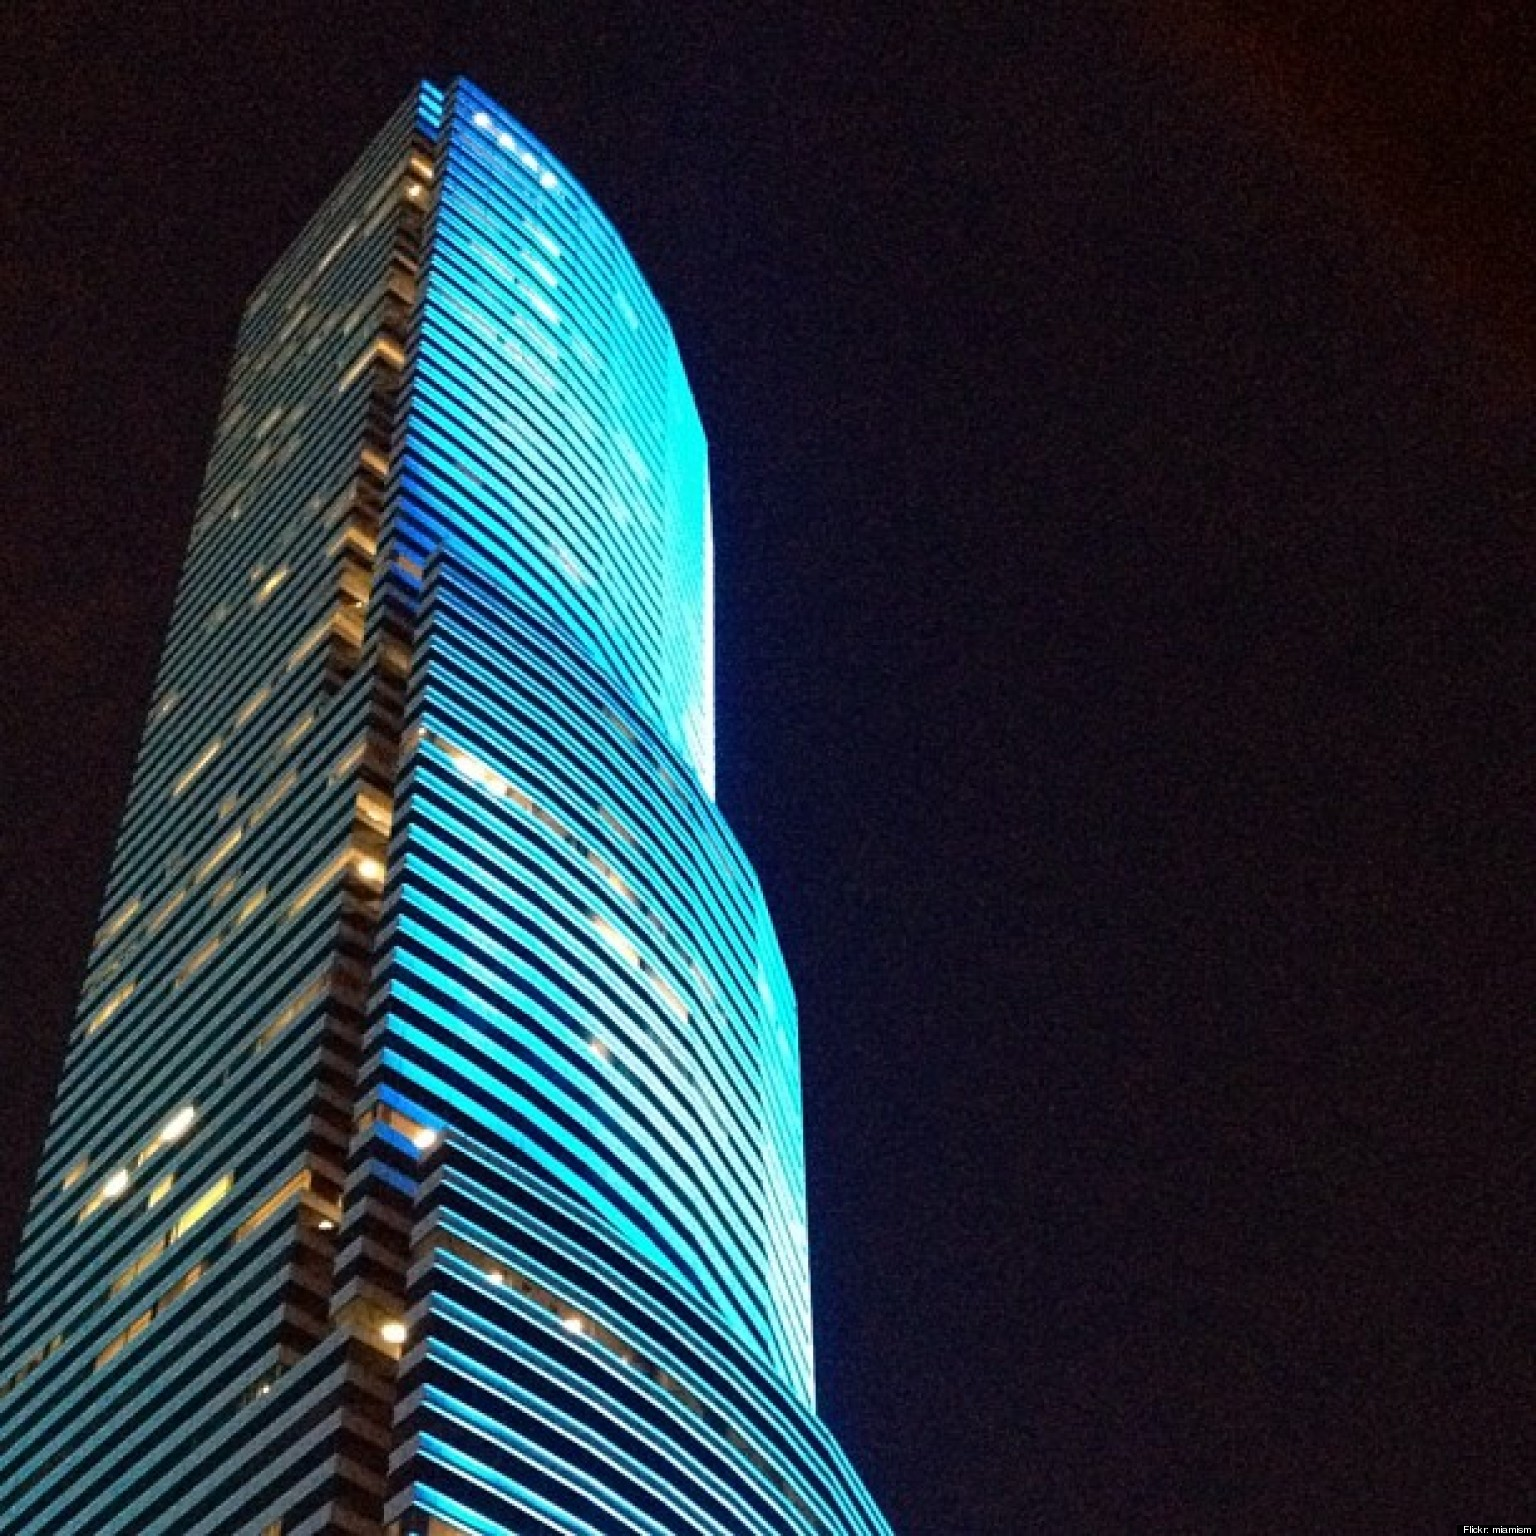 Miami Tower Changes Colors Instantly With New LED Lights